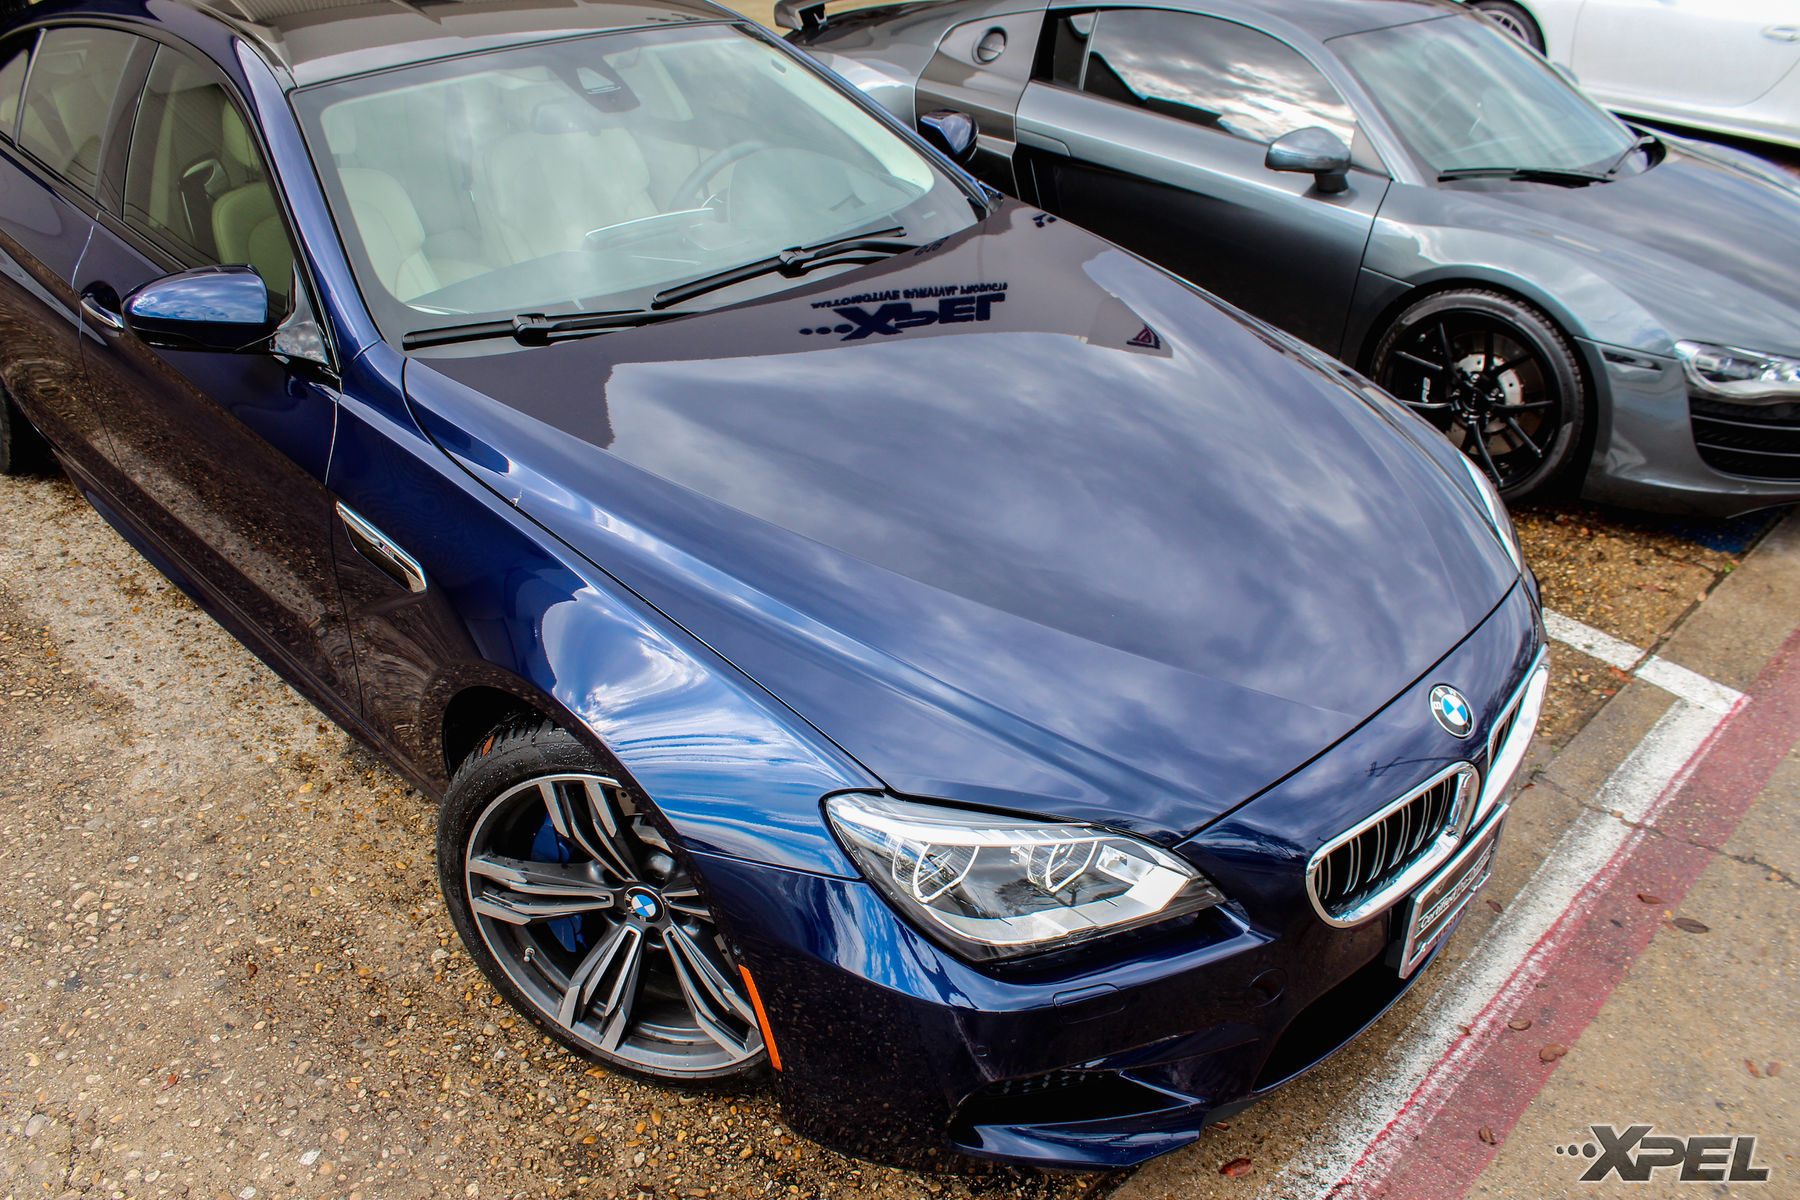 2014 BMW M6 Gran Coupe | Blue 2014 BMW M6 Gran Coupe